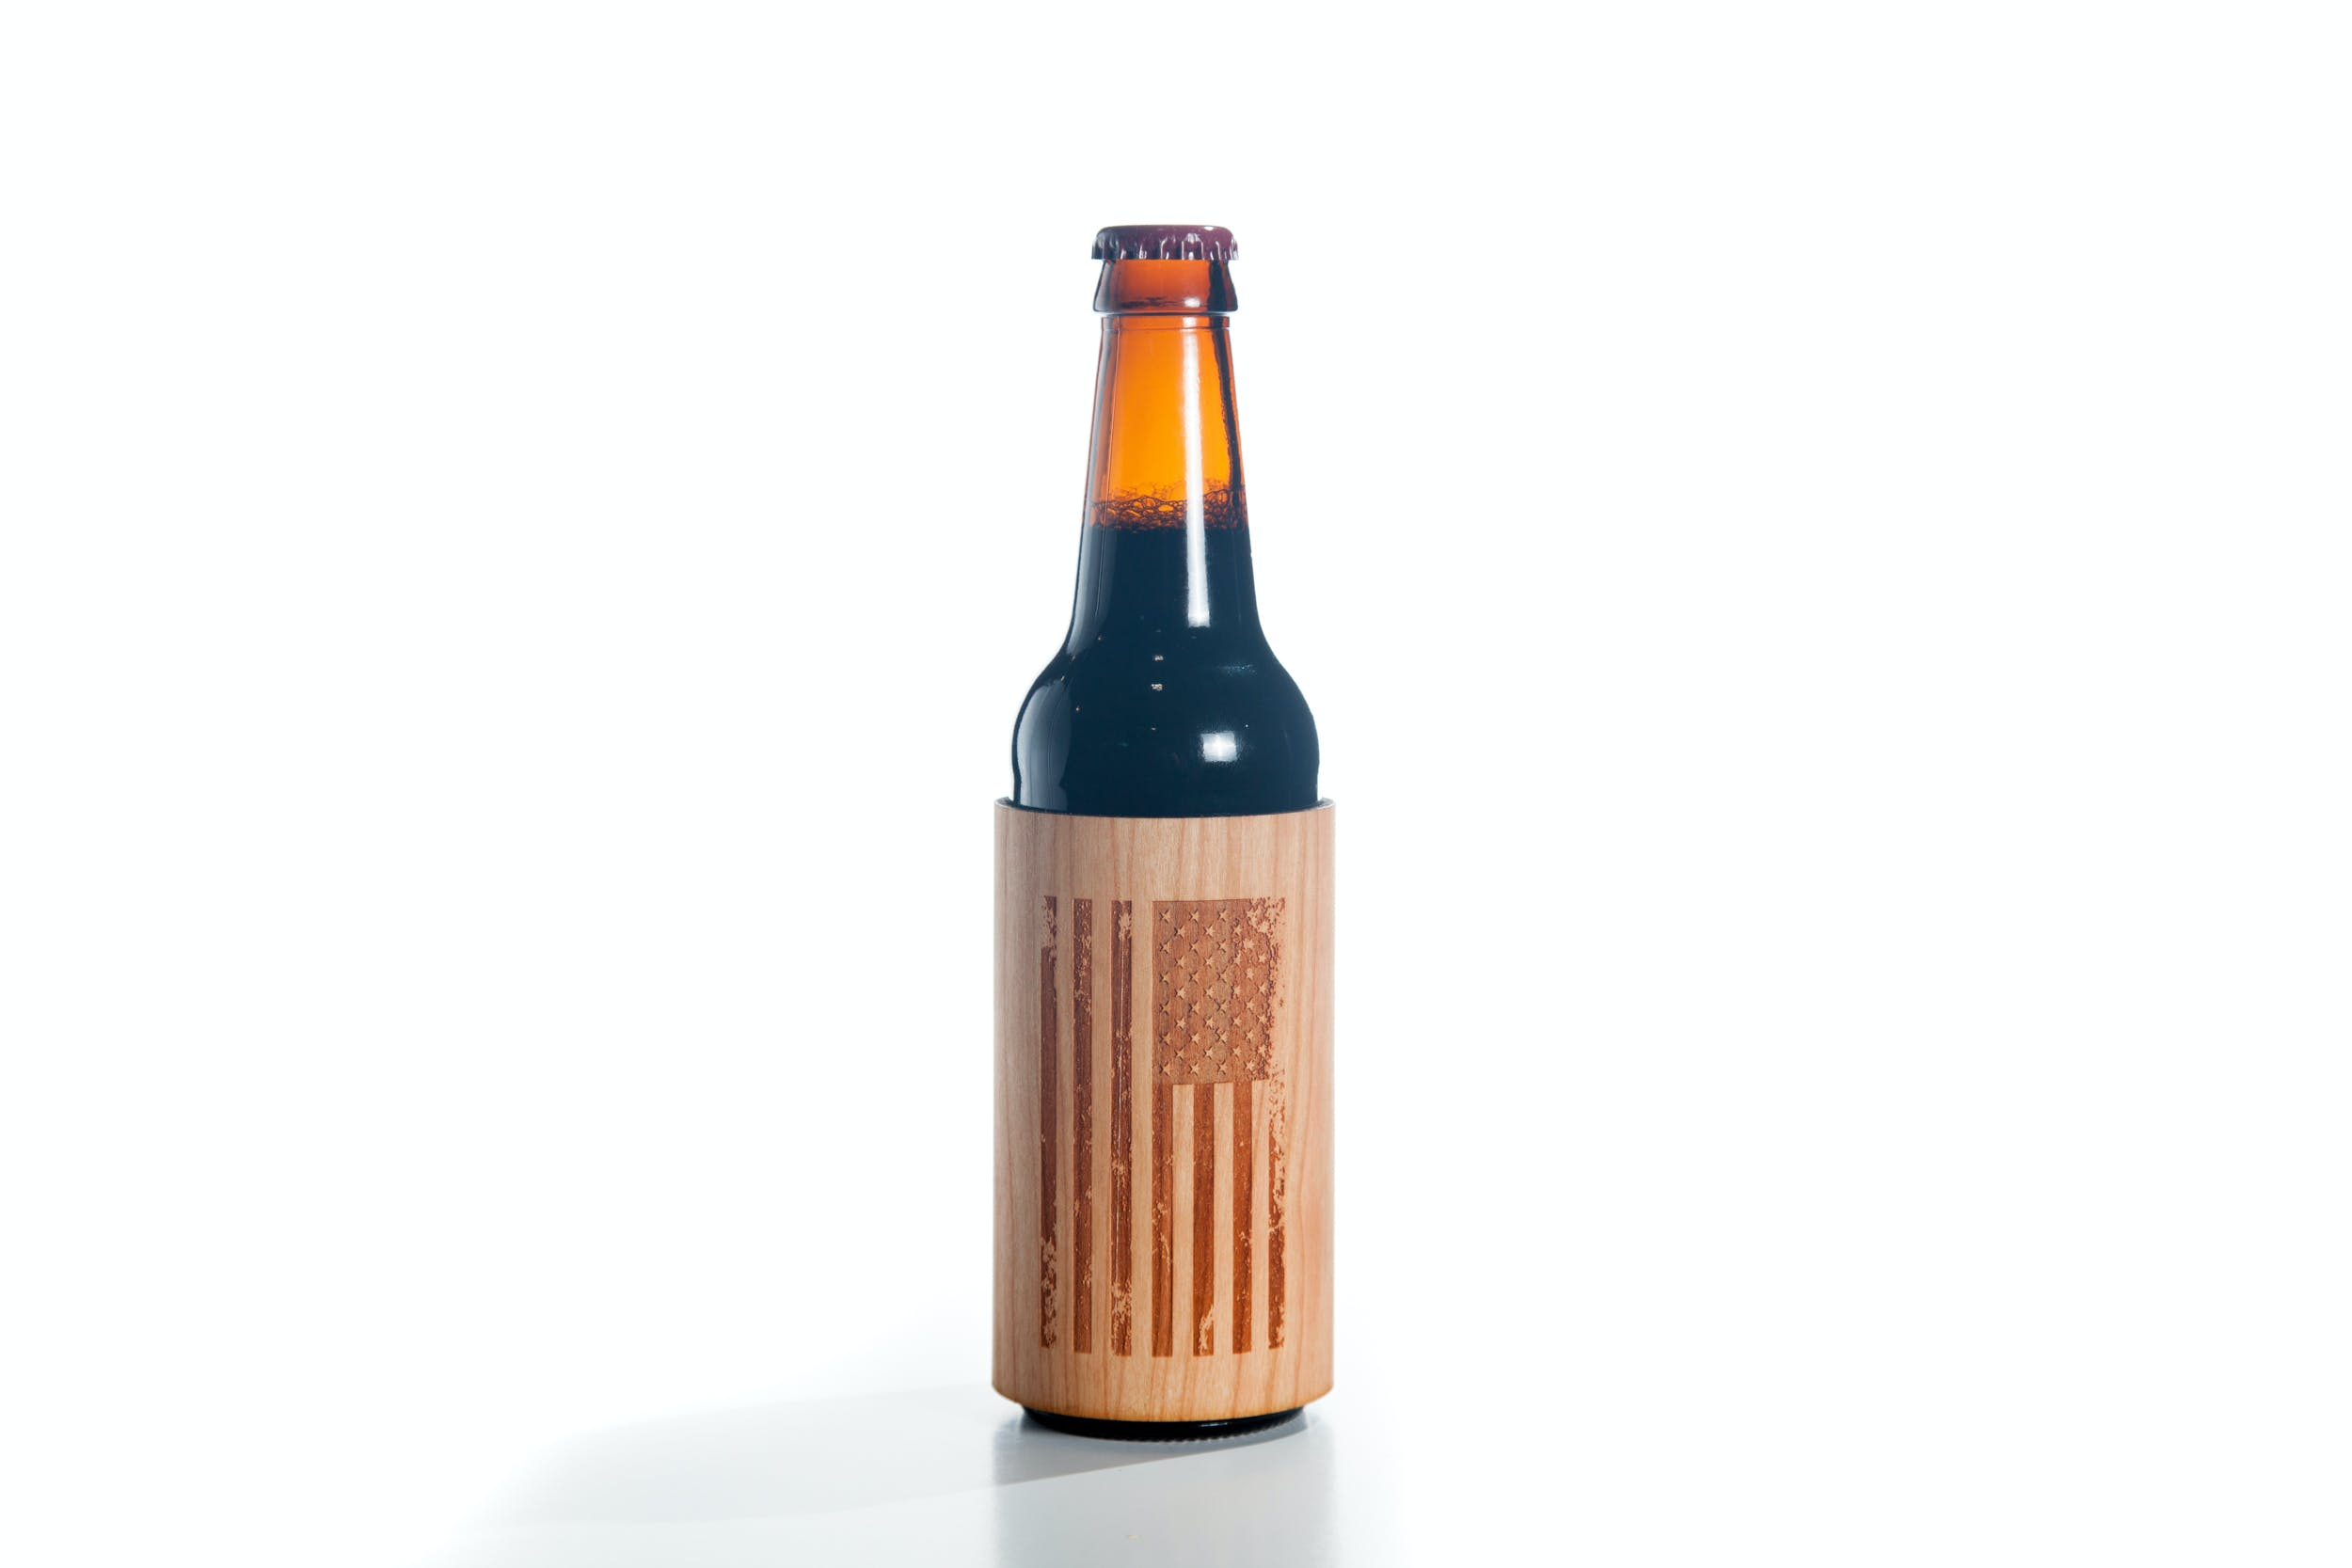 Real Wood Bottle Koozie Koozie sold by Just 1 Tree